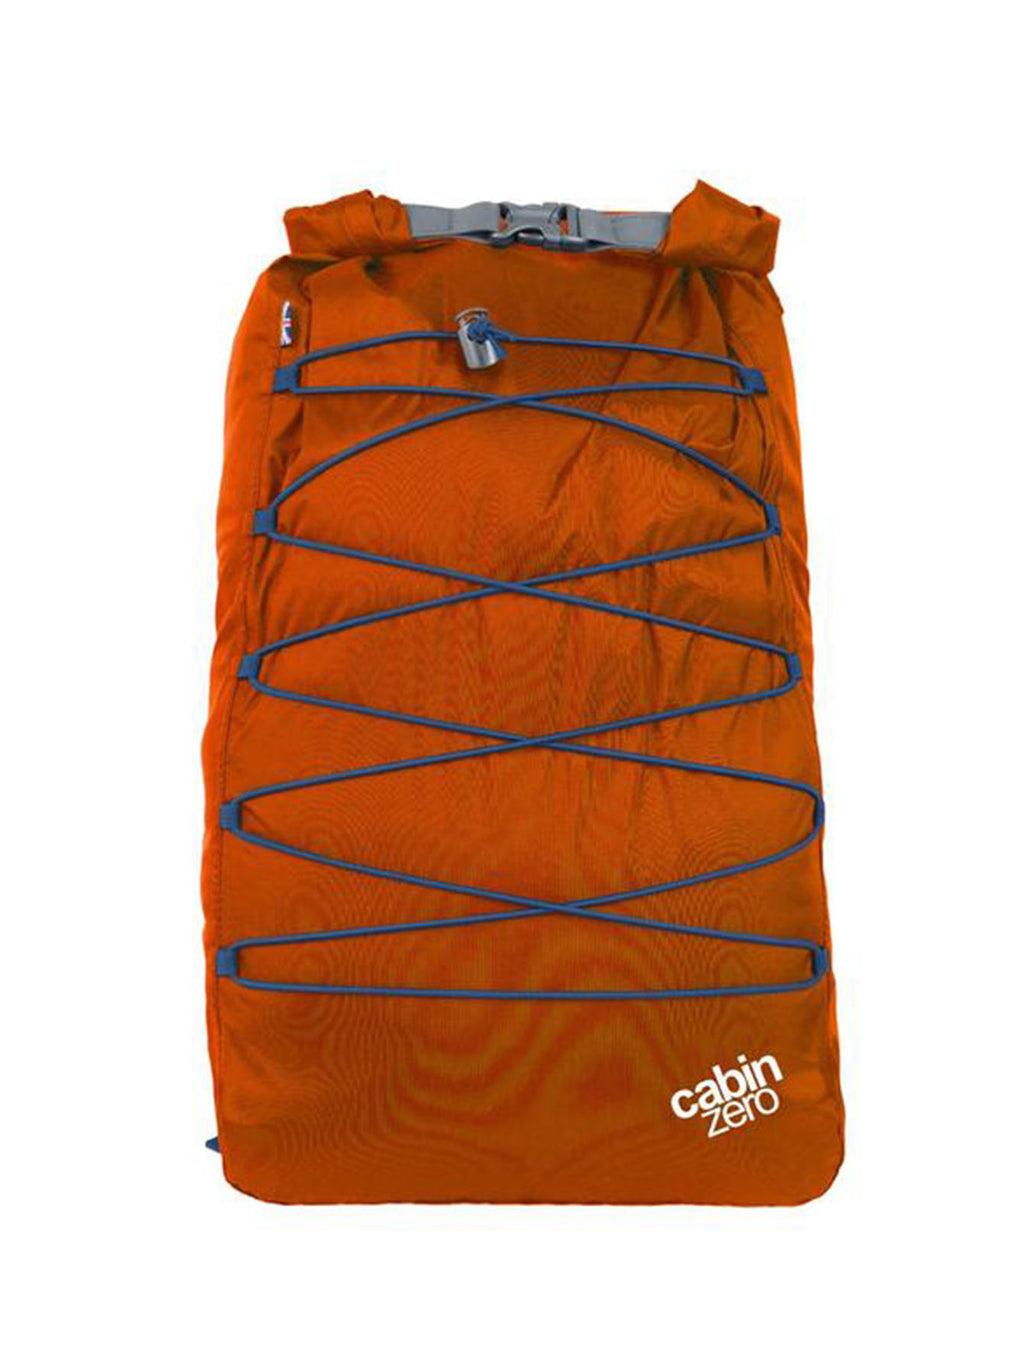 Cabinzero Adventure Dry Waterproof Cross Body Bay 30L in Orange Color